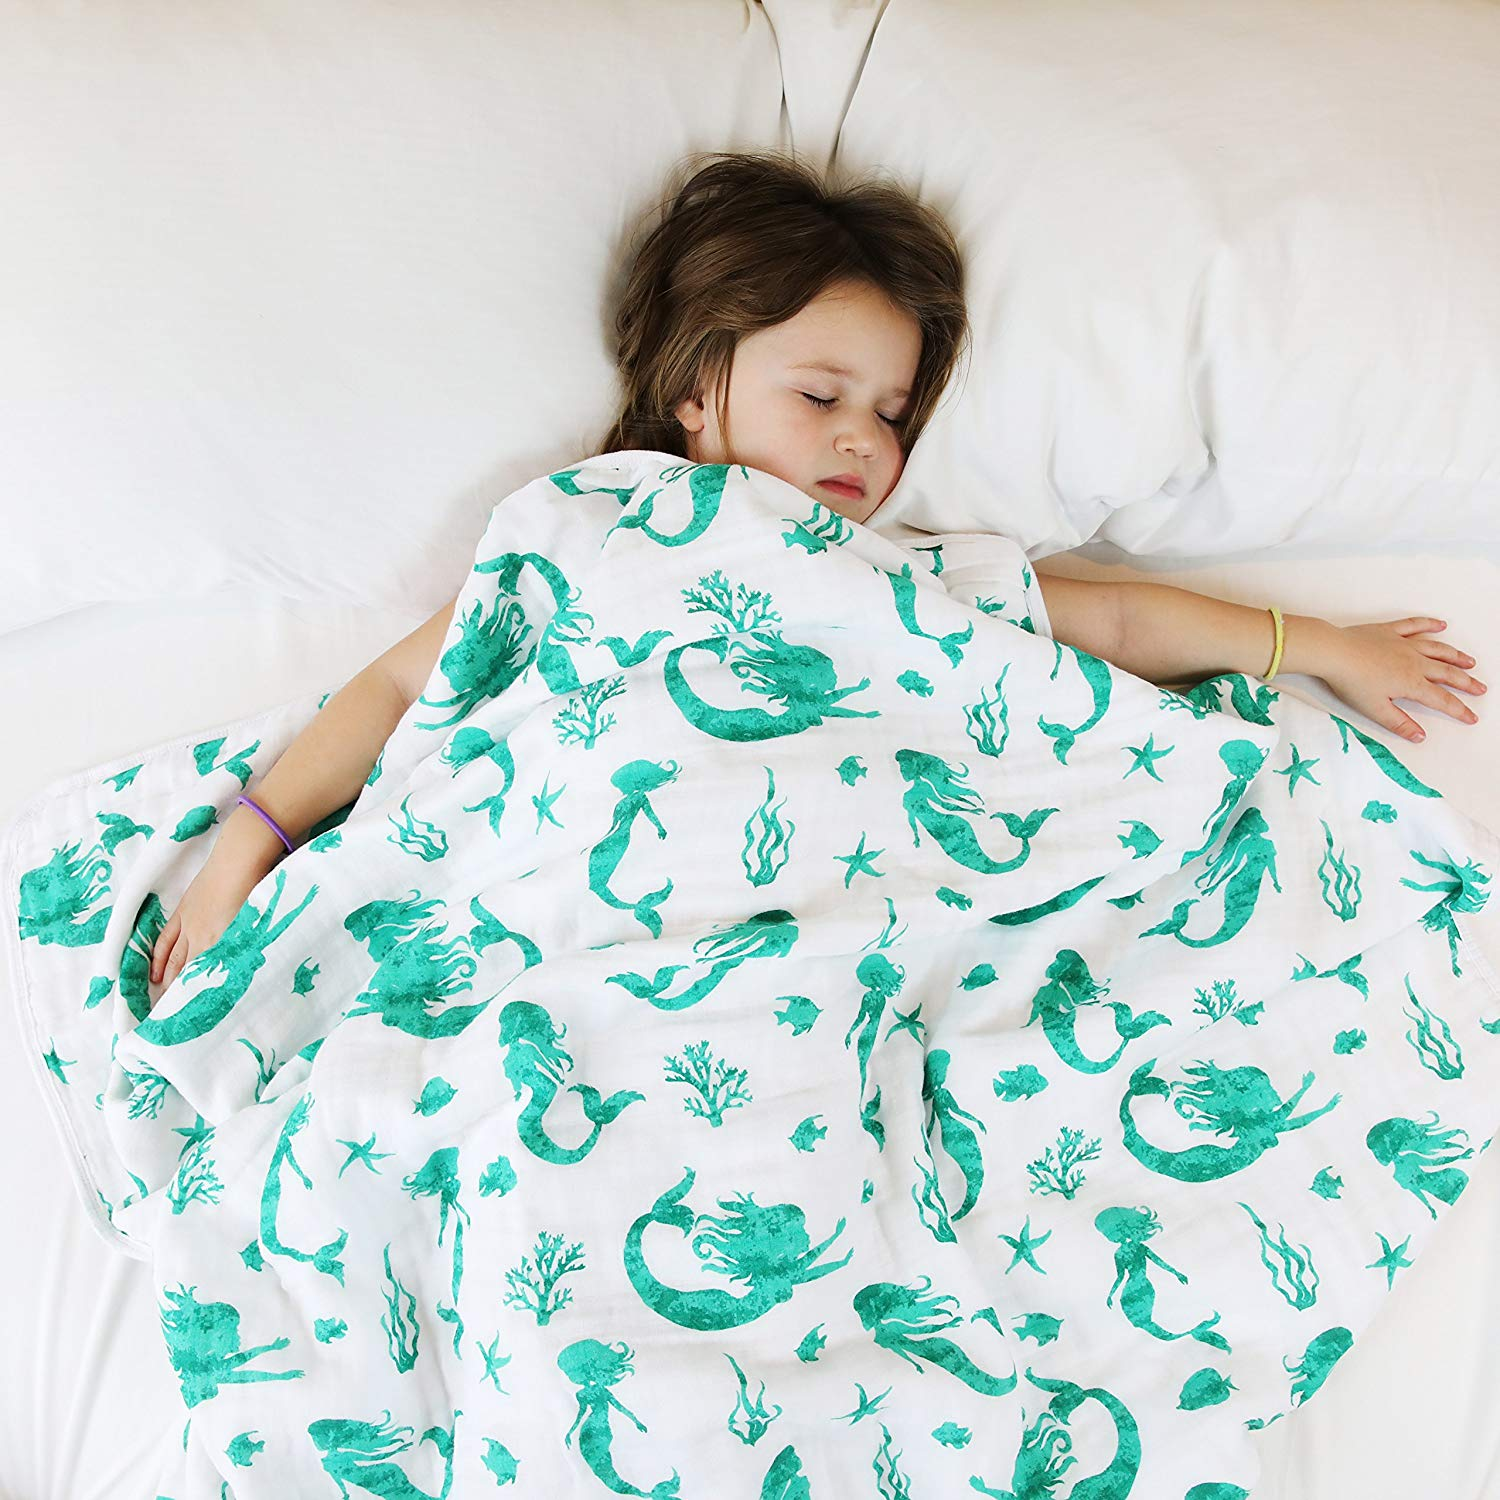 100% Organic Muslin Everything Blanket by ADDISON BELLE - baby blankets